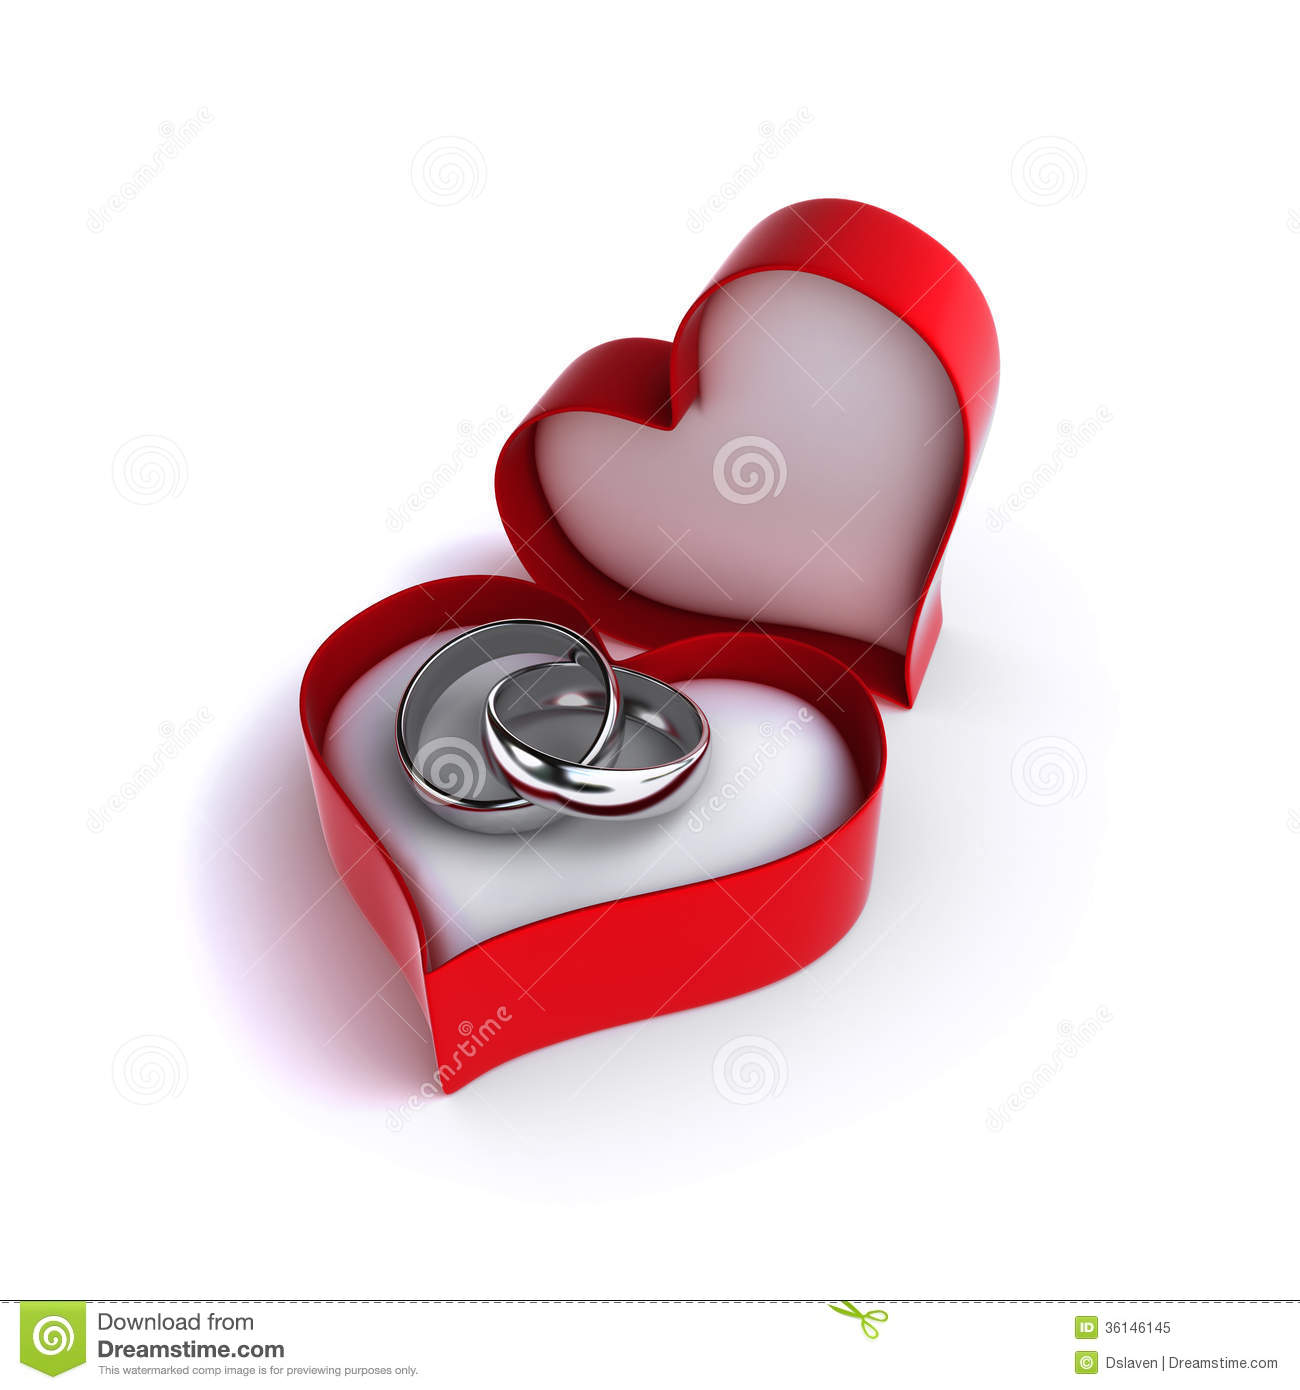 Wedding rings royalty free stock photo image 36146145 for Heart shaped engagement ring box